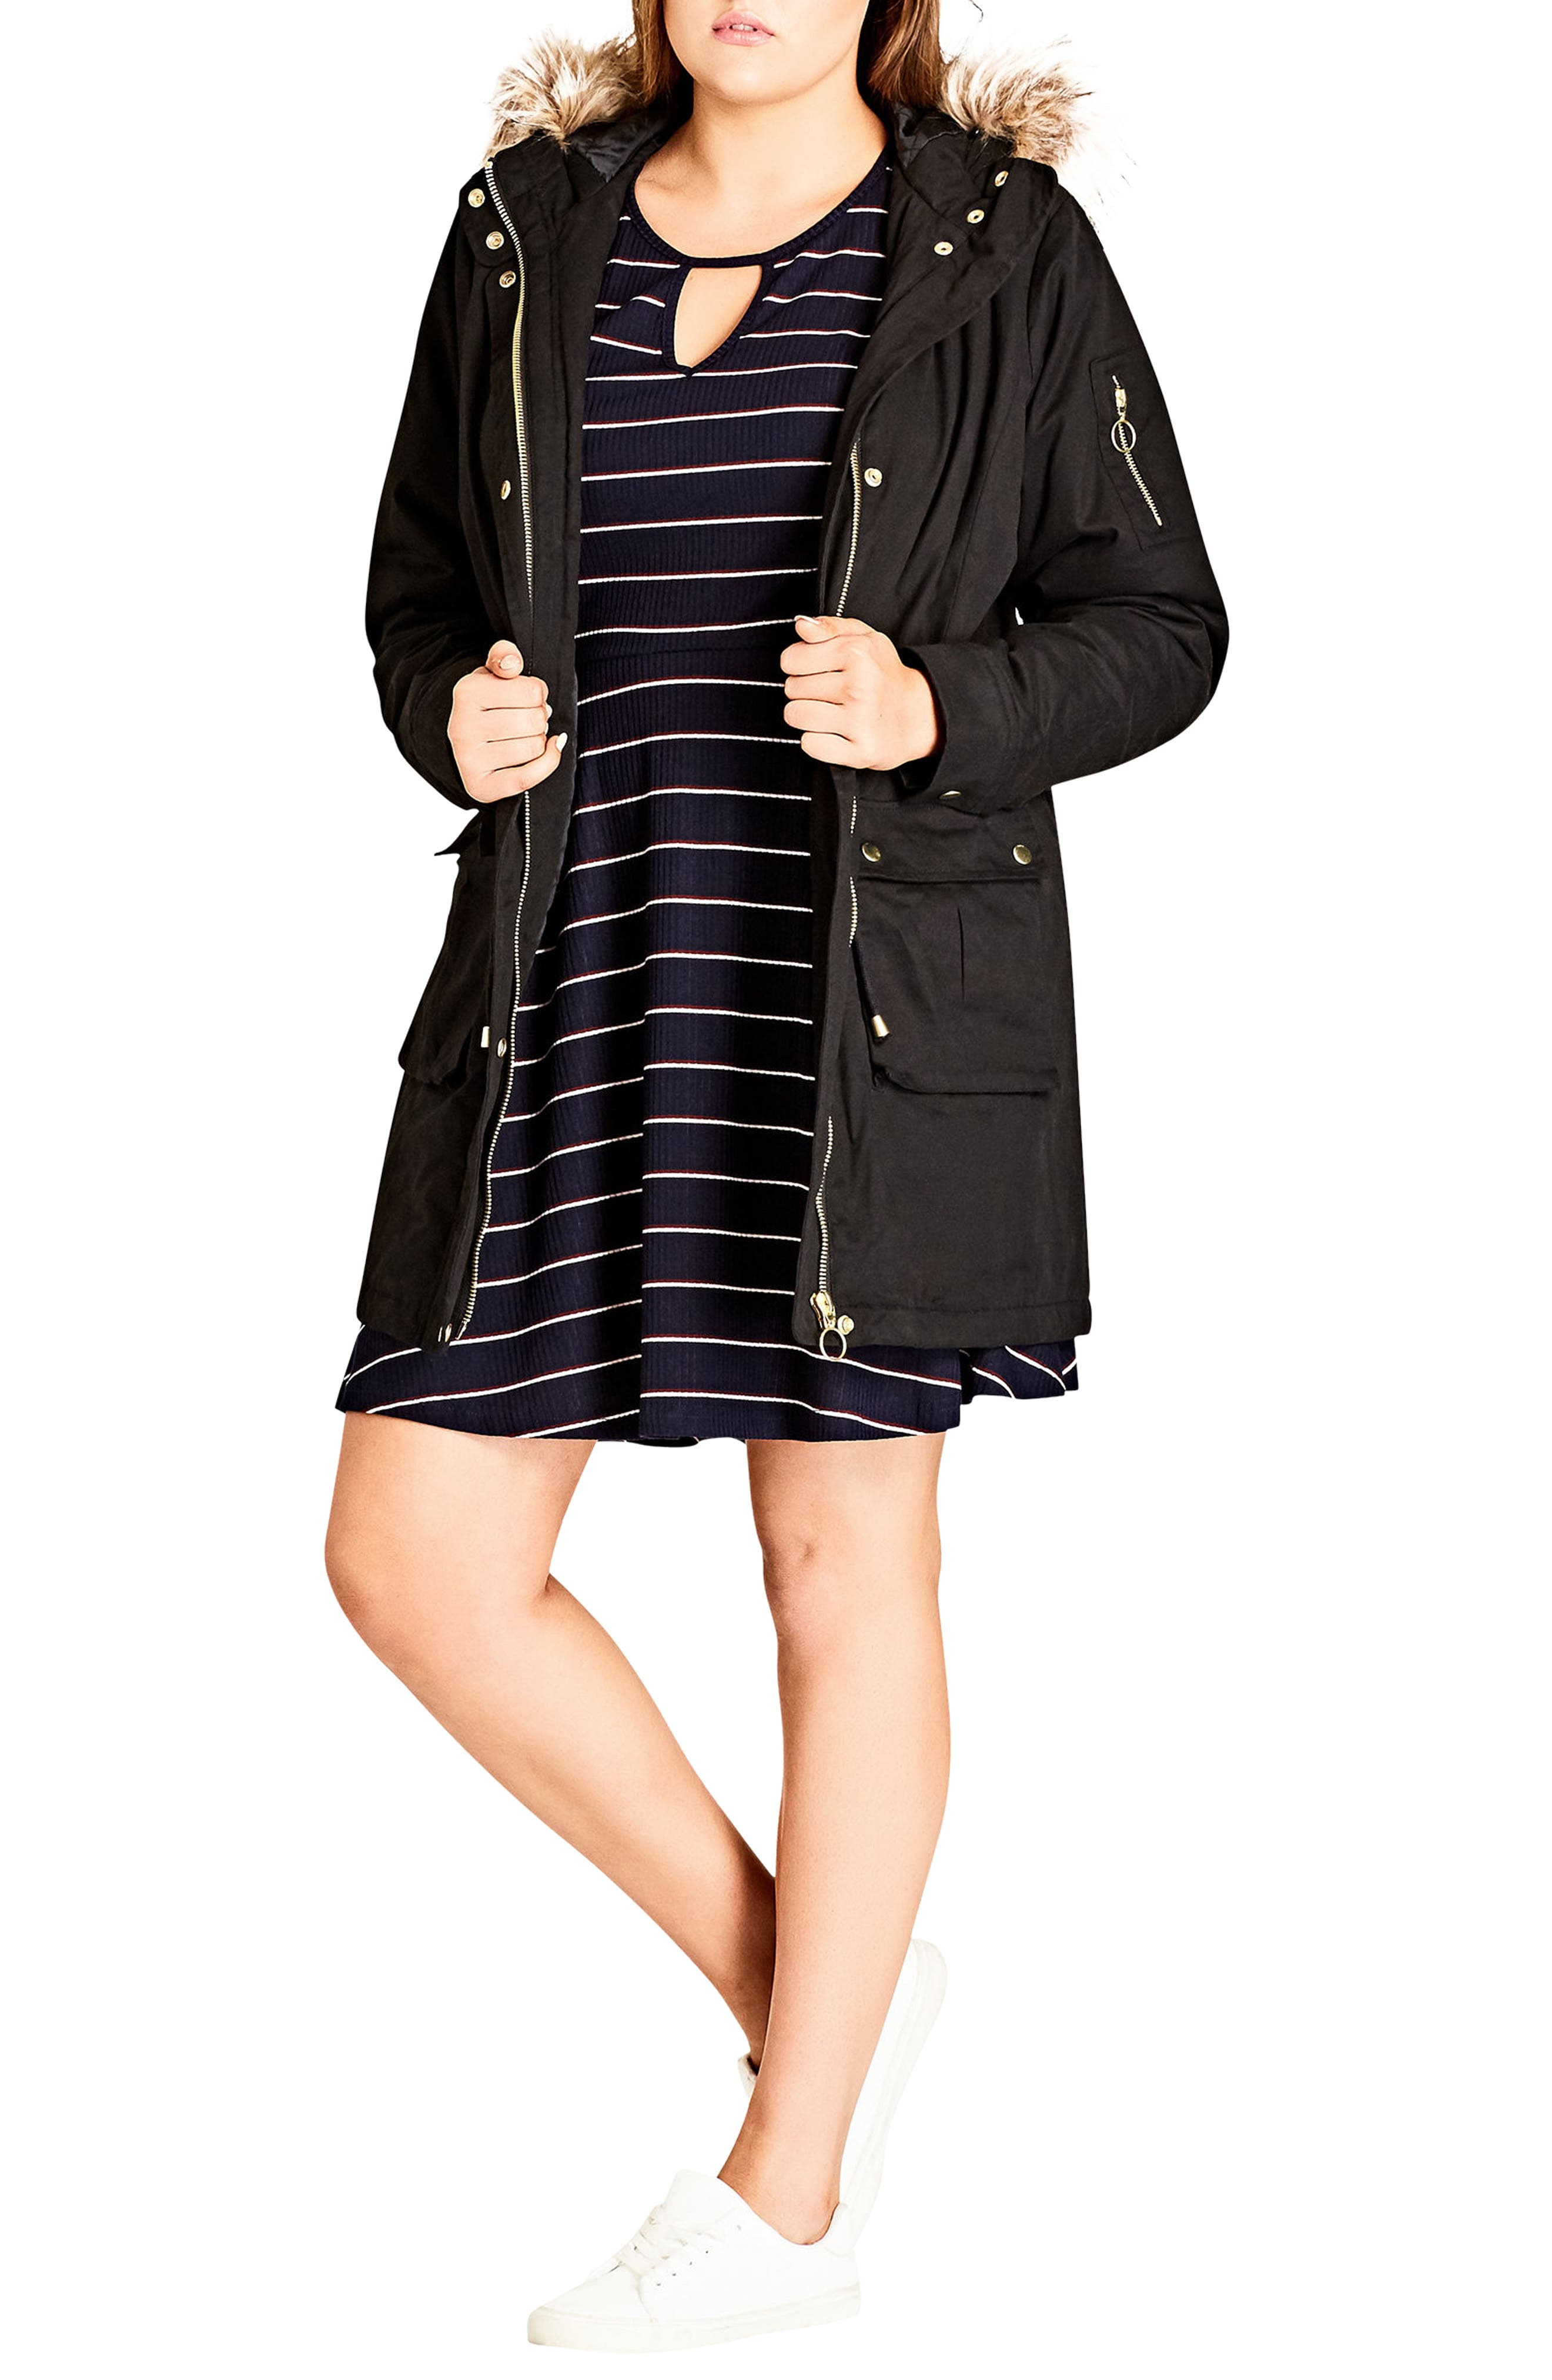 Alternate Image 1 Selected - City Chic Snowed In Faux Fur Trim Parka (Plus Size)